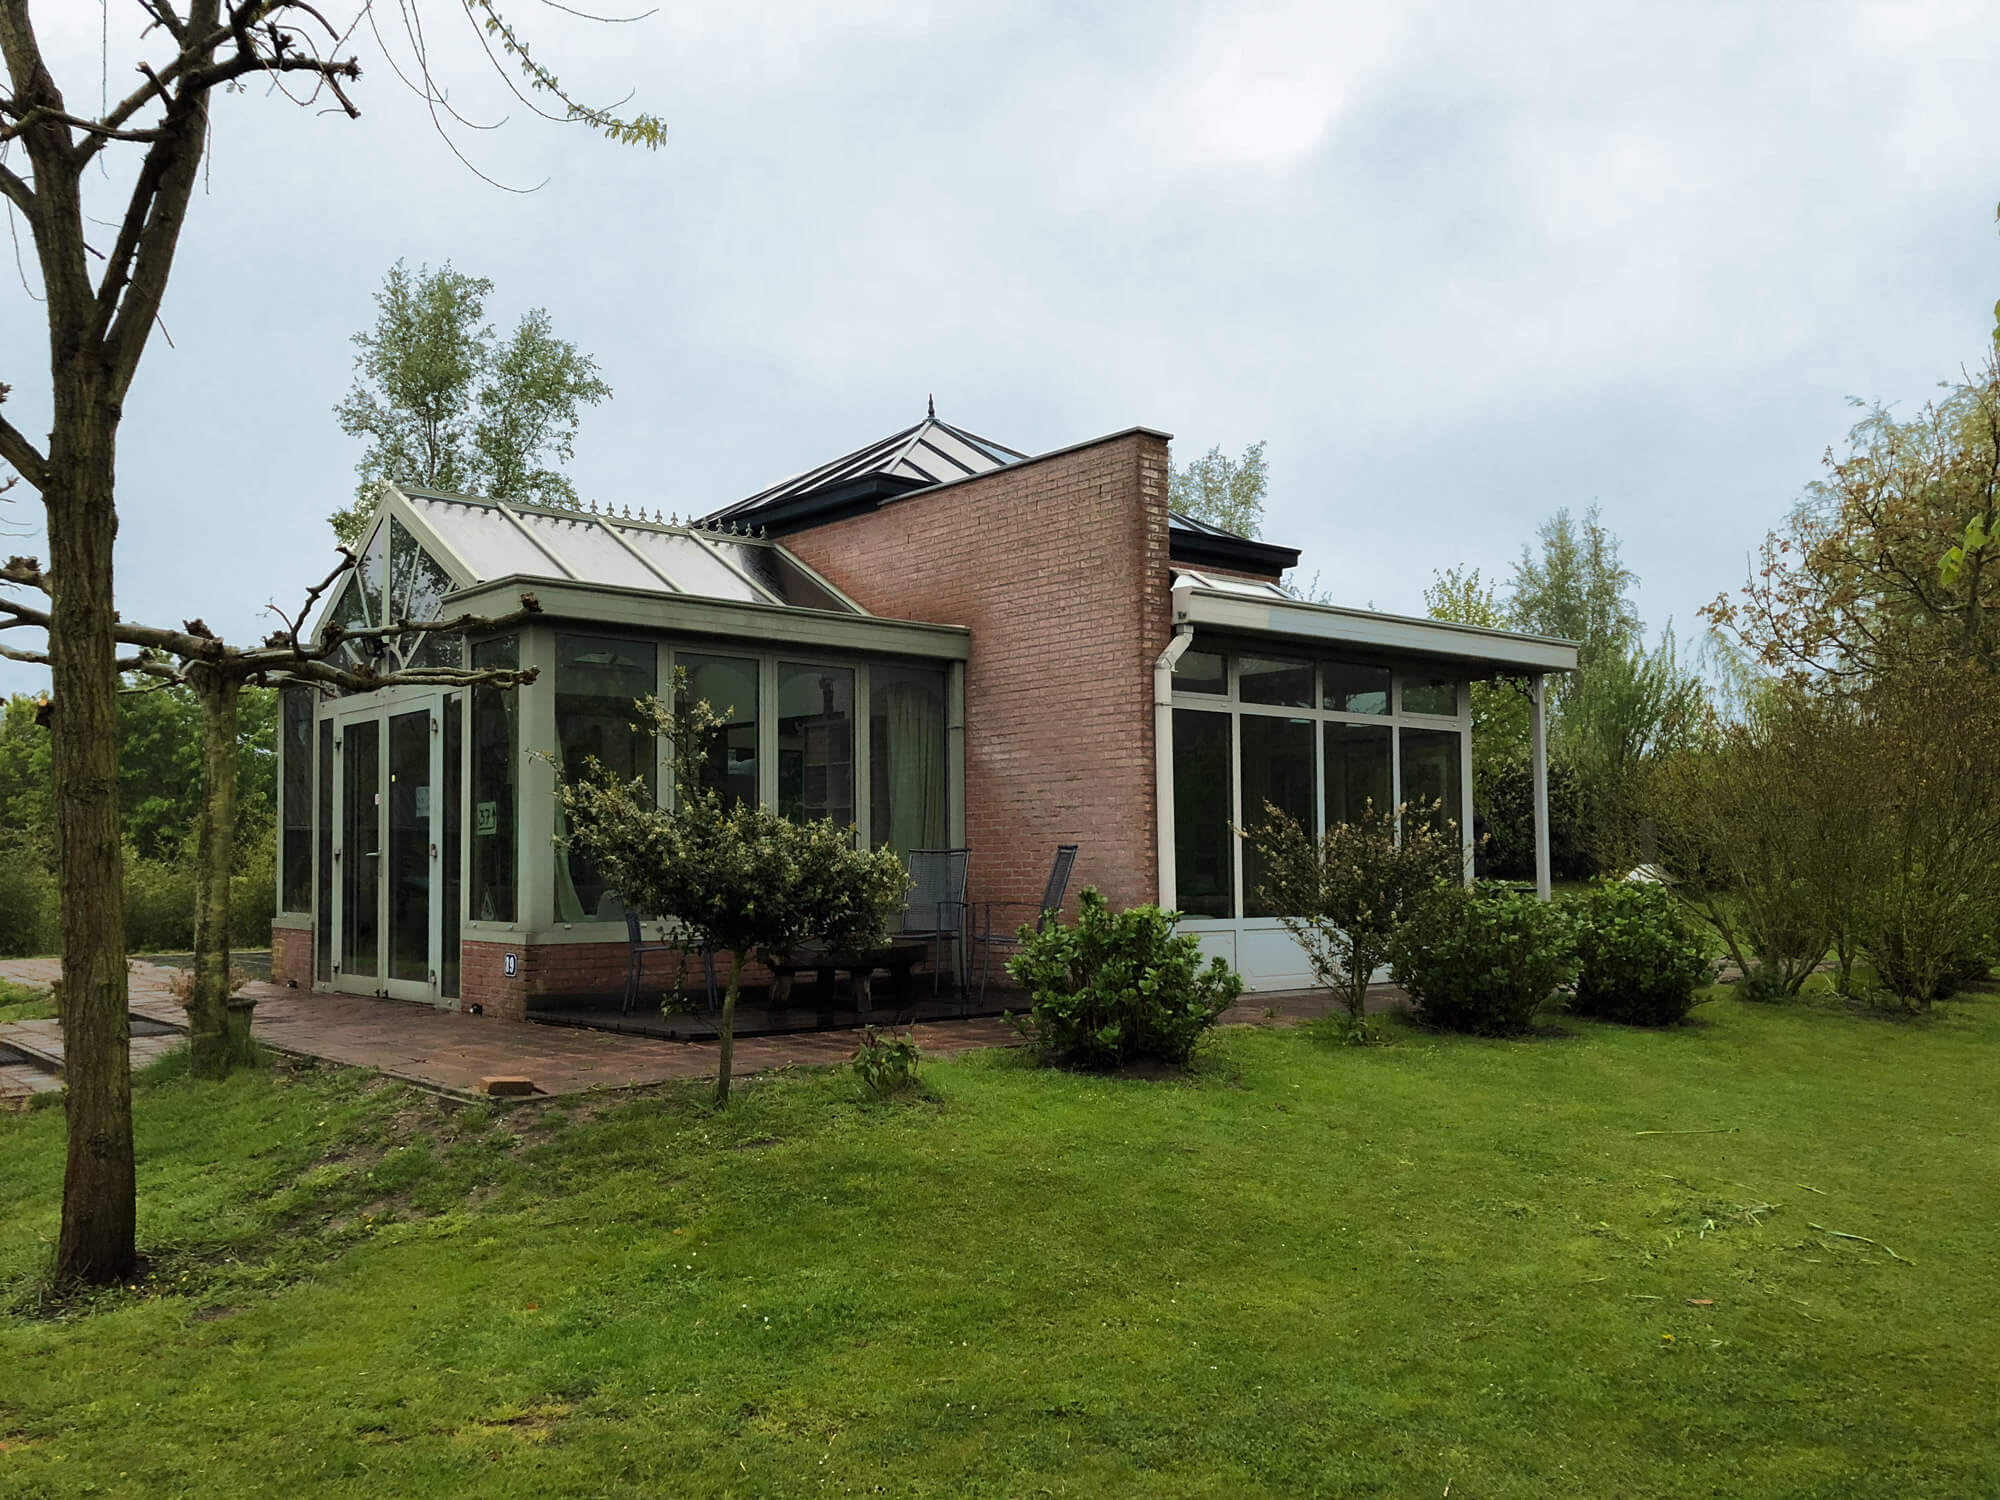 glass house jardin airbnb holland tourisme